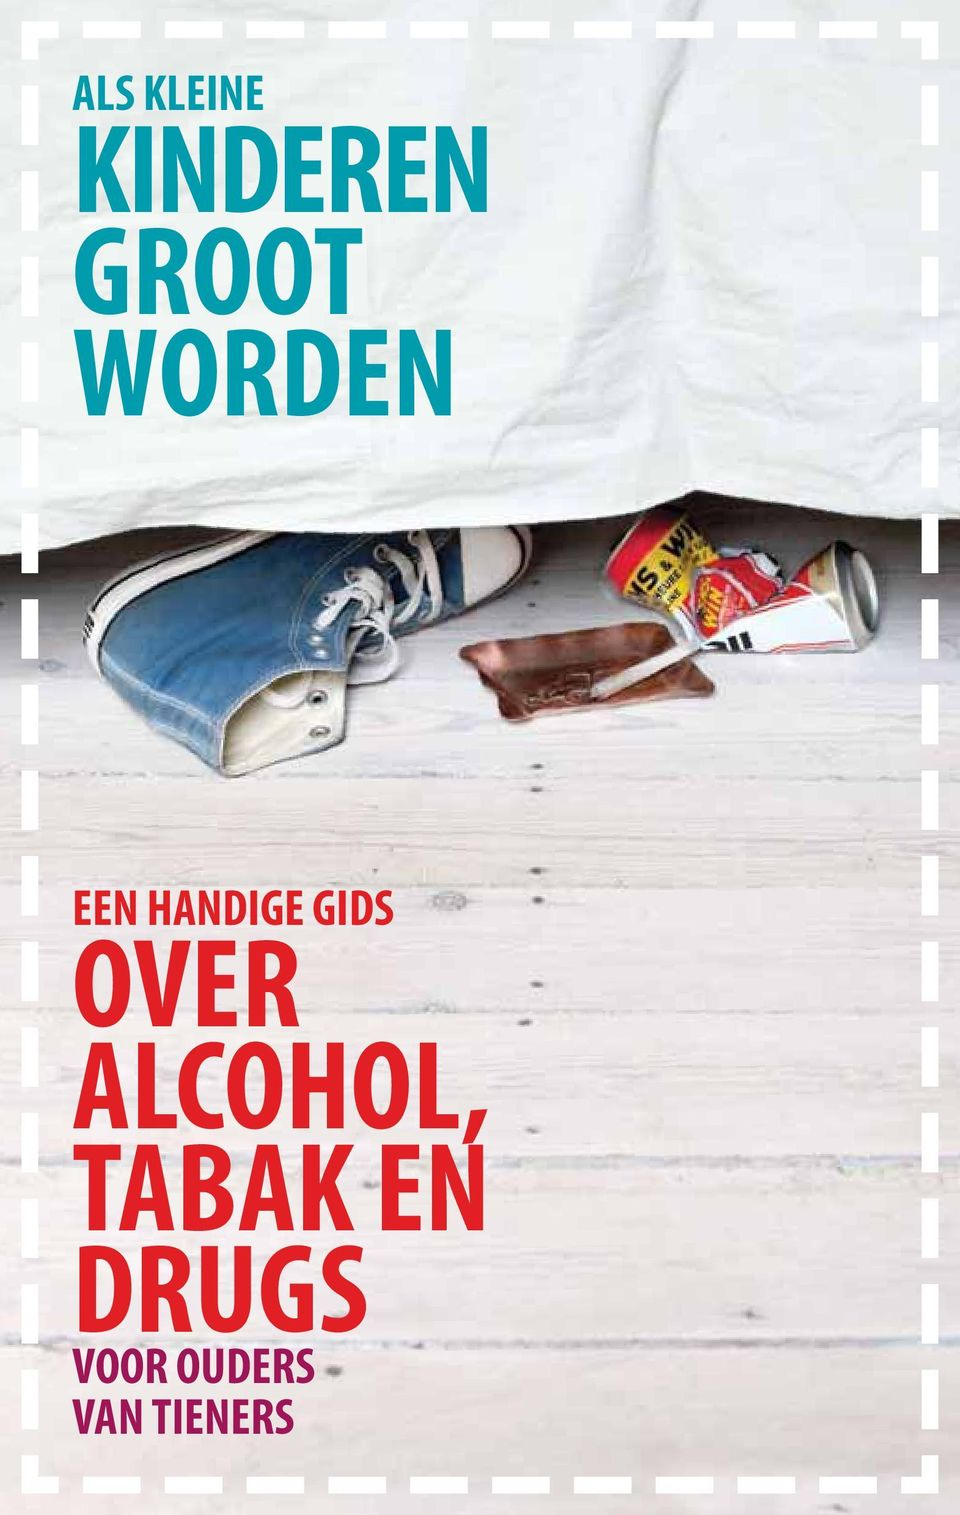 OVER ALCOHOL, TABAK EN